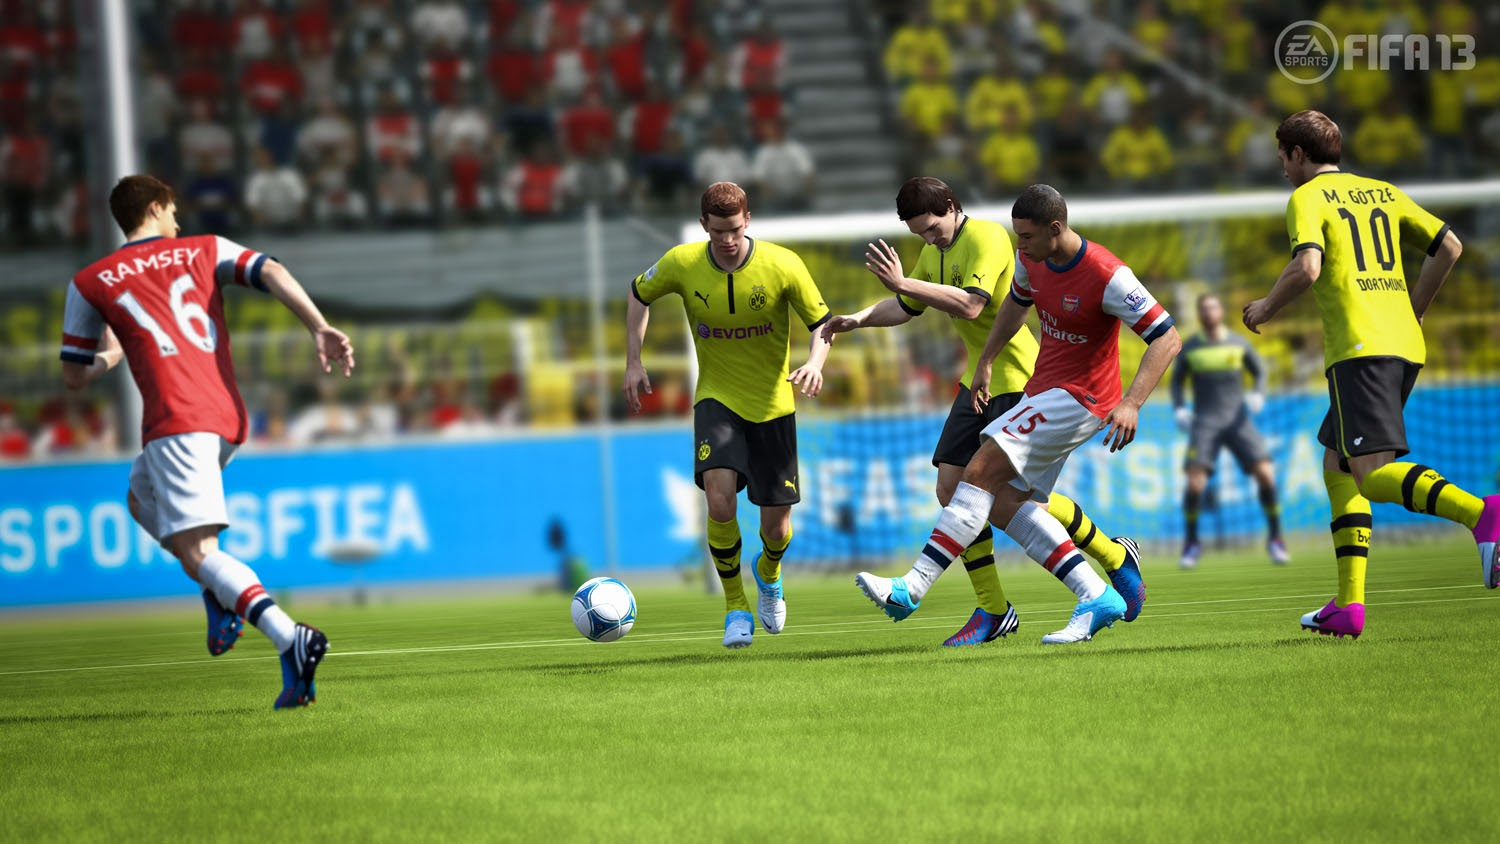 Free Game Fifa 2013 For Pc